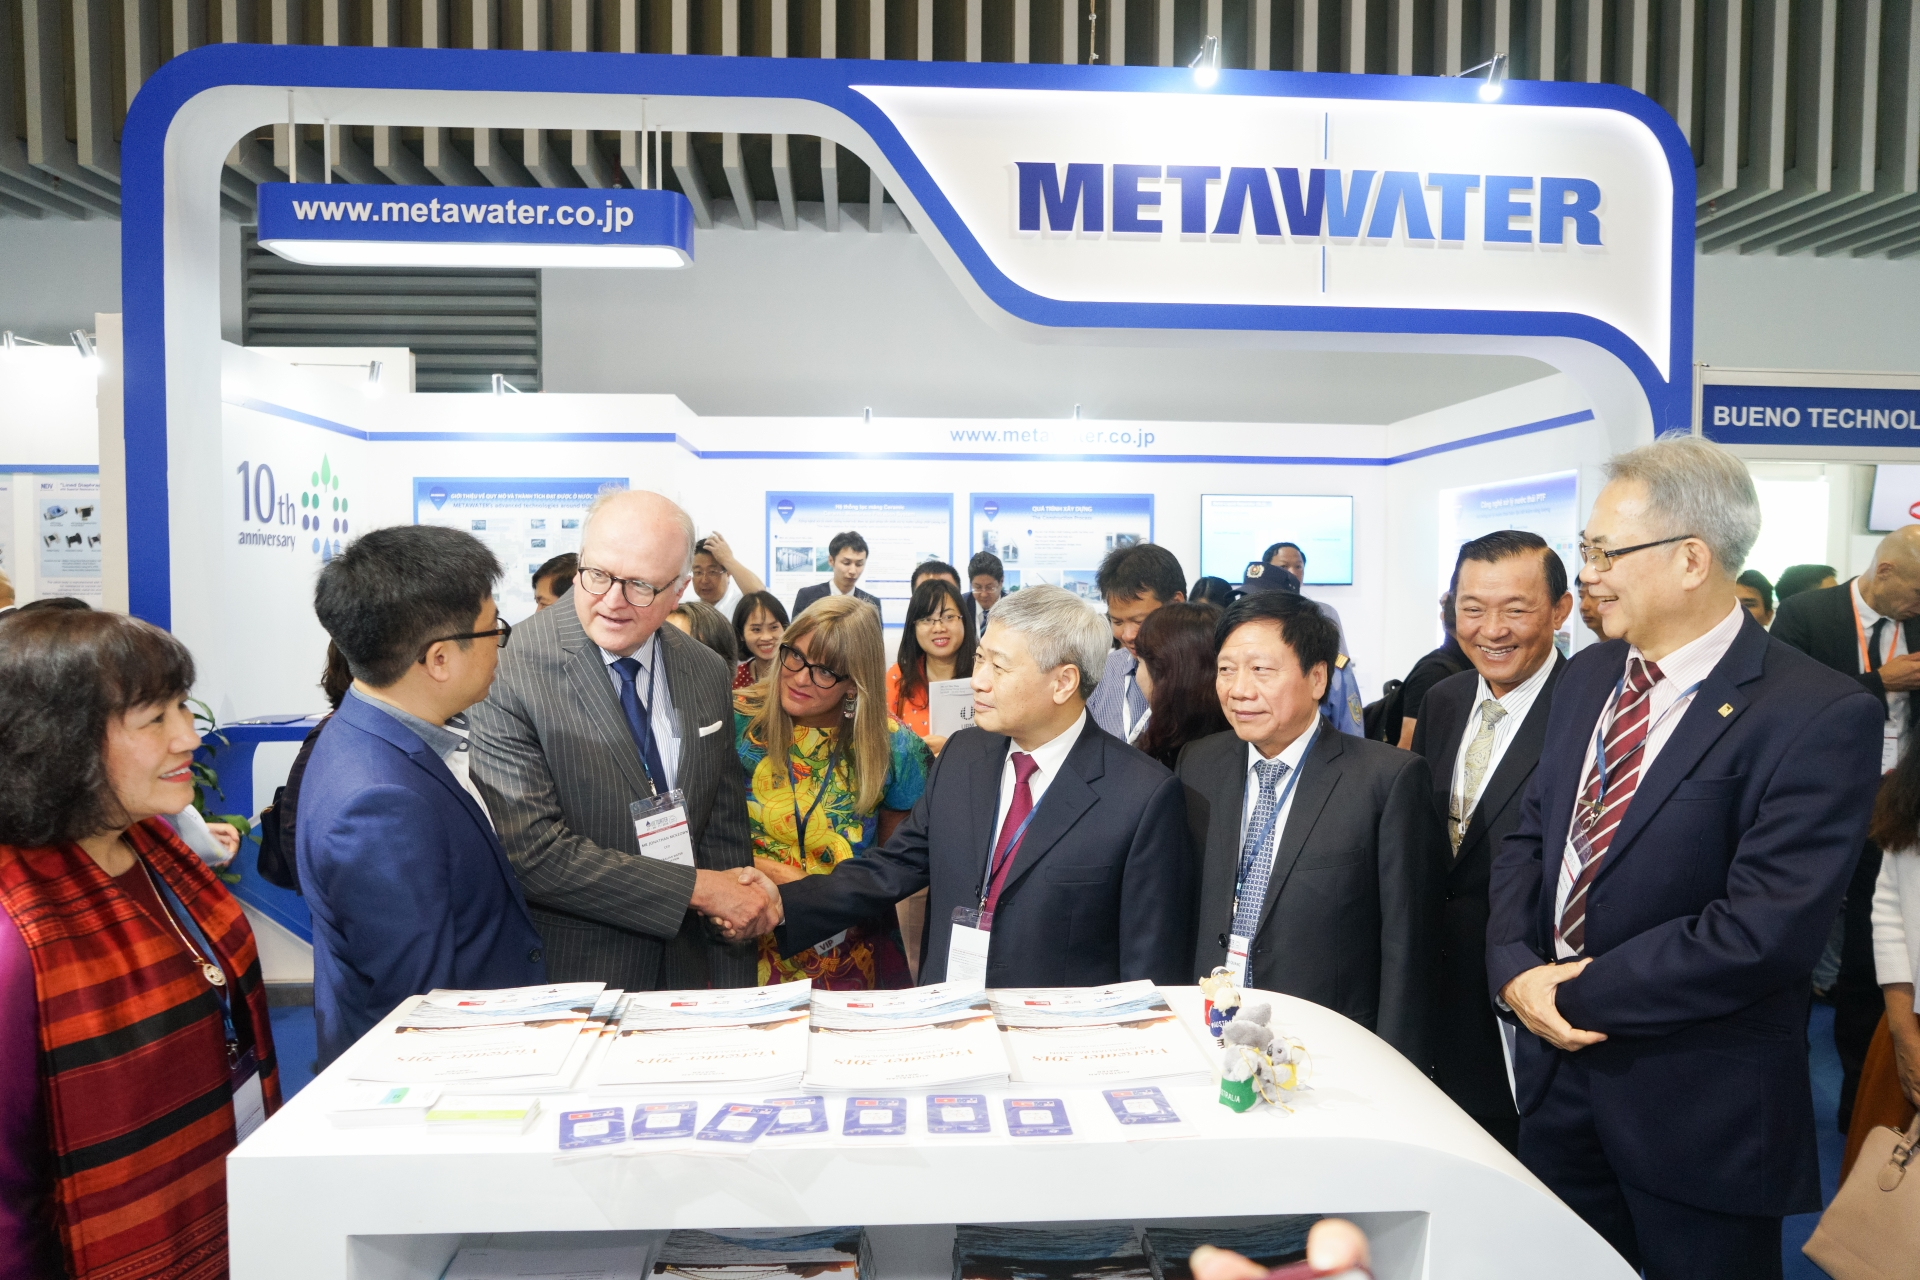 vietwater is underway to promote latest technologies in water industry